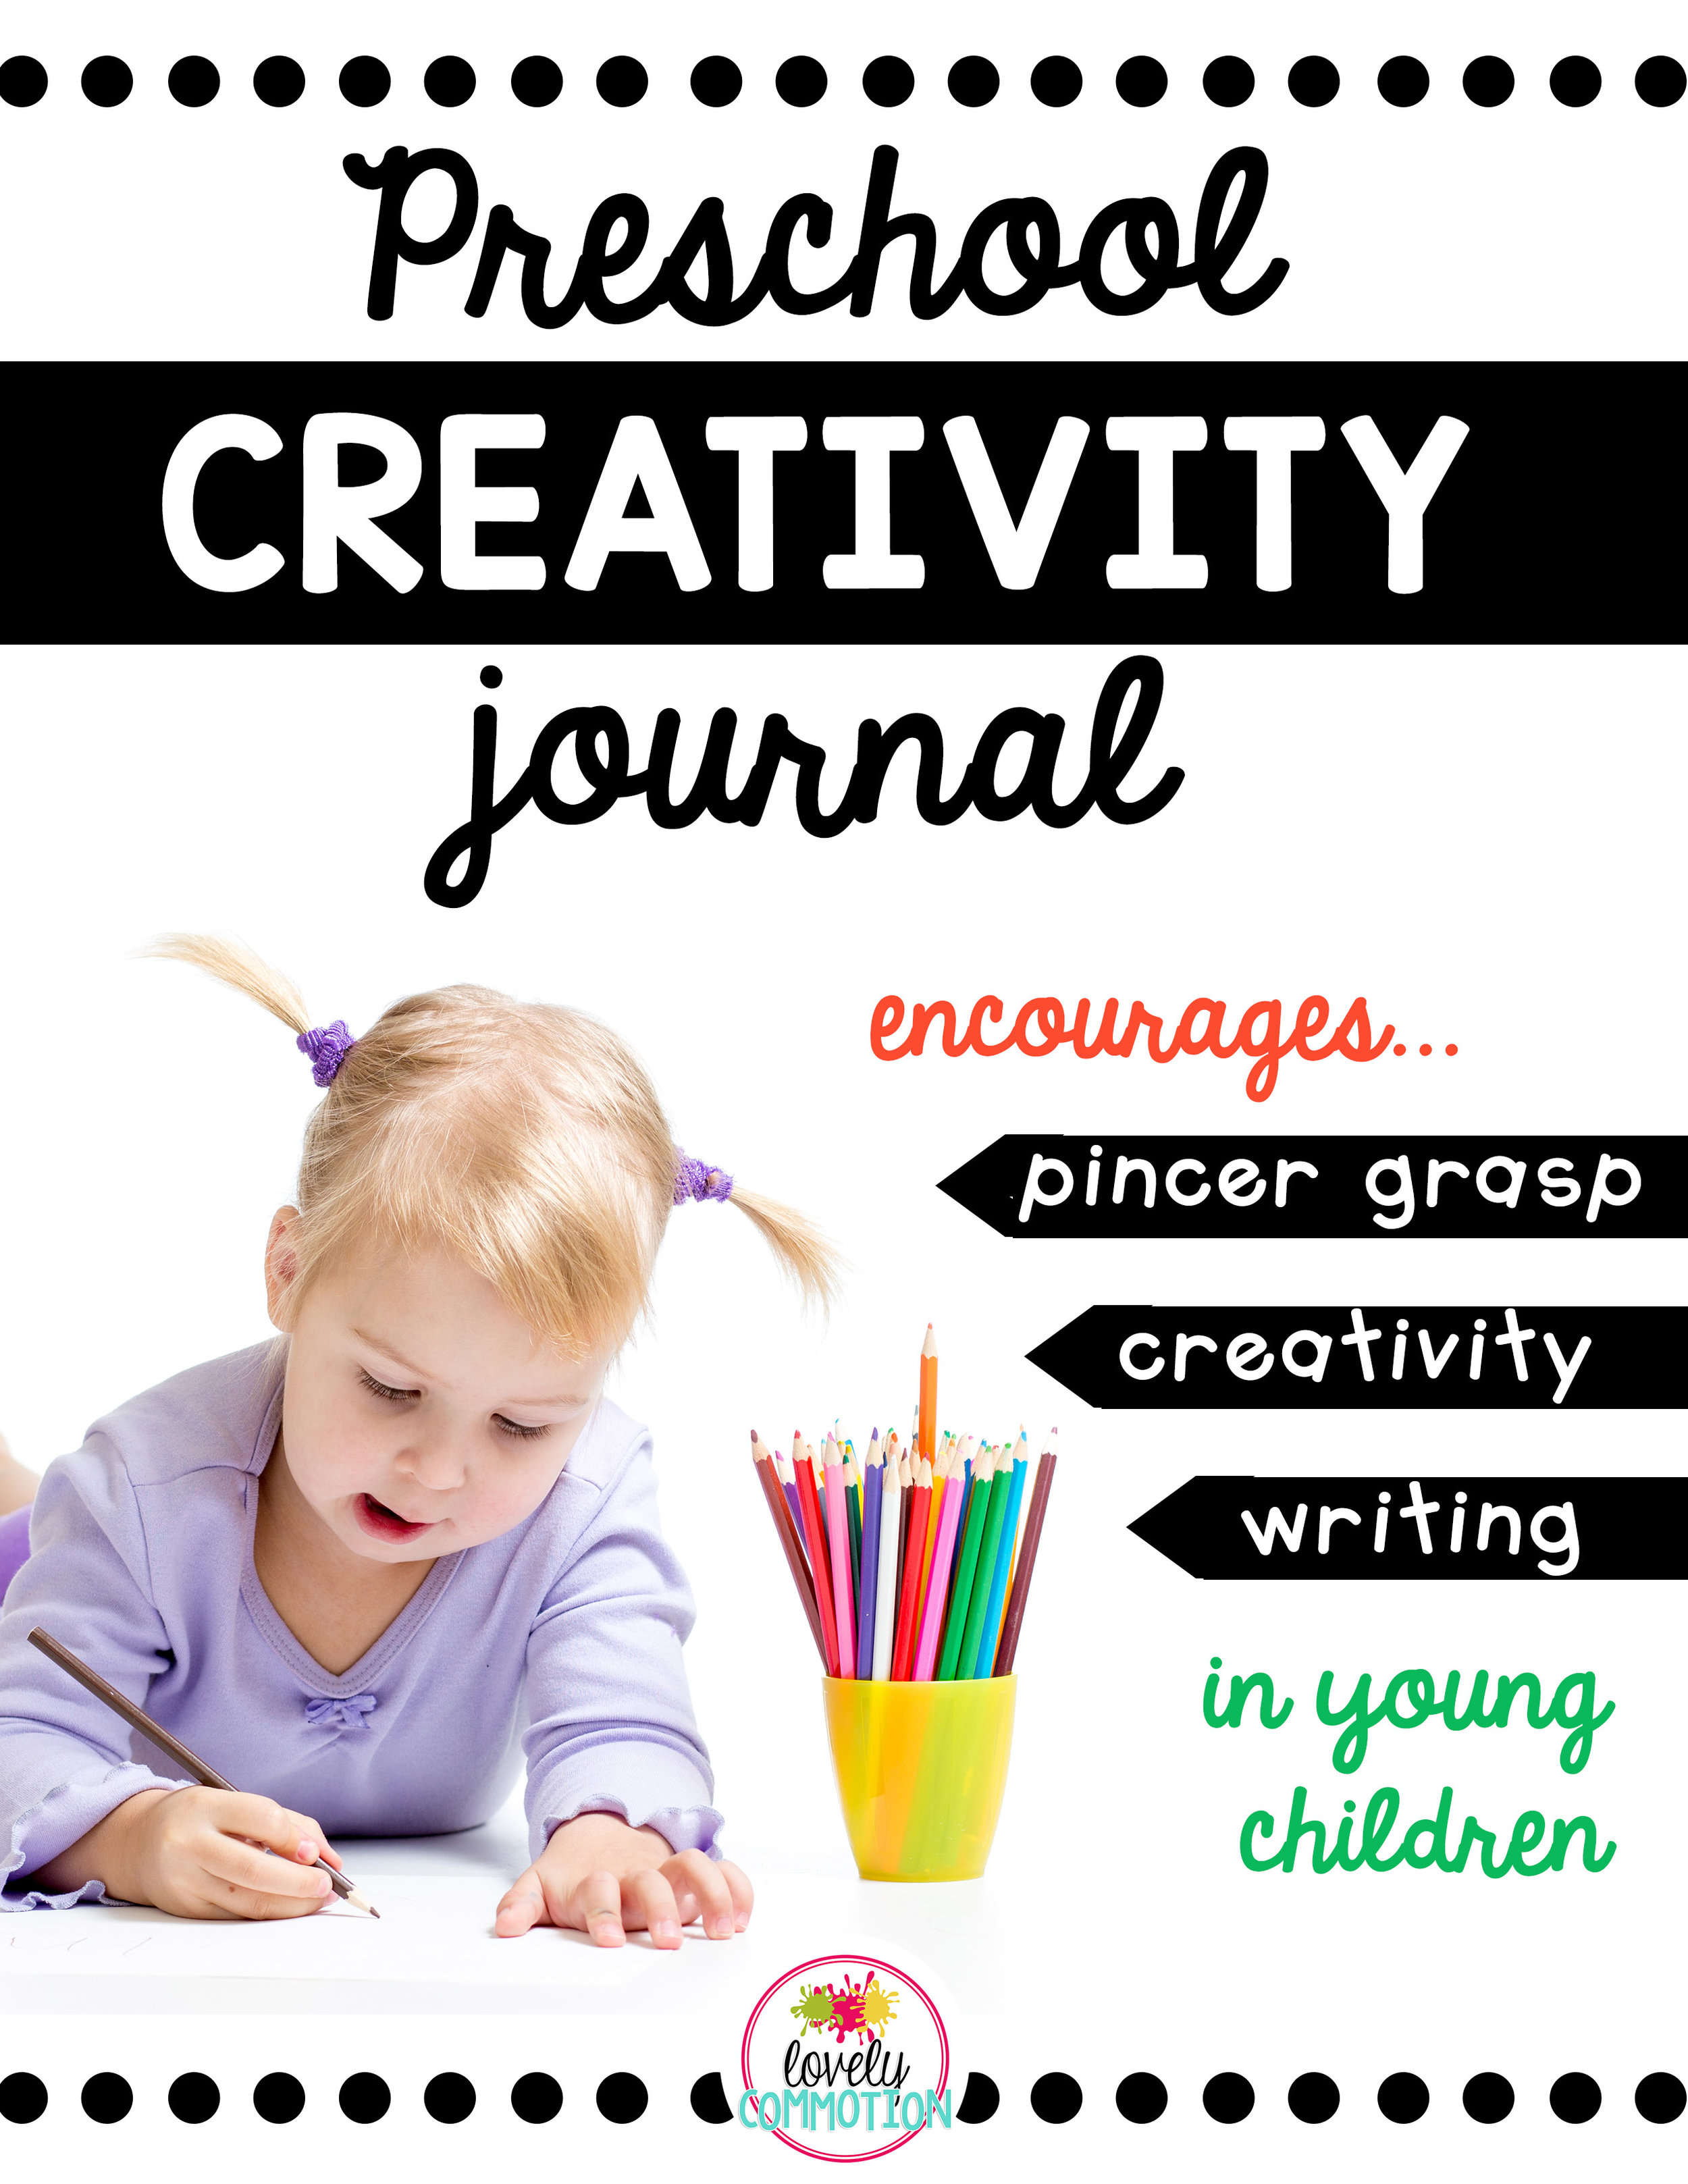 Preschool Creativity Journal